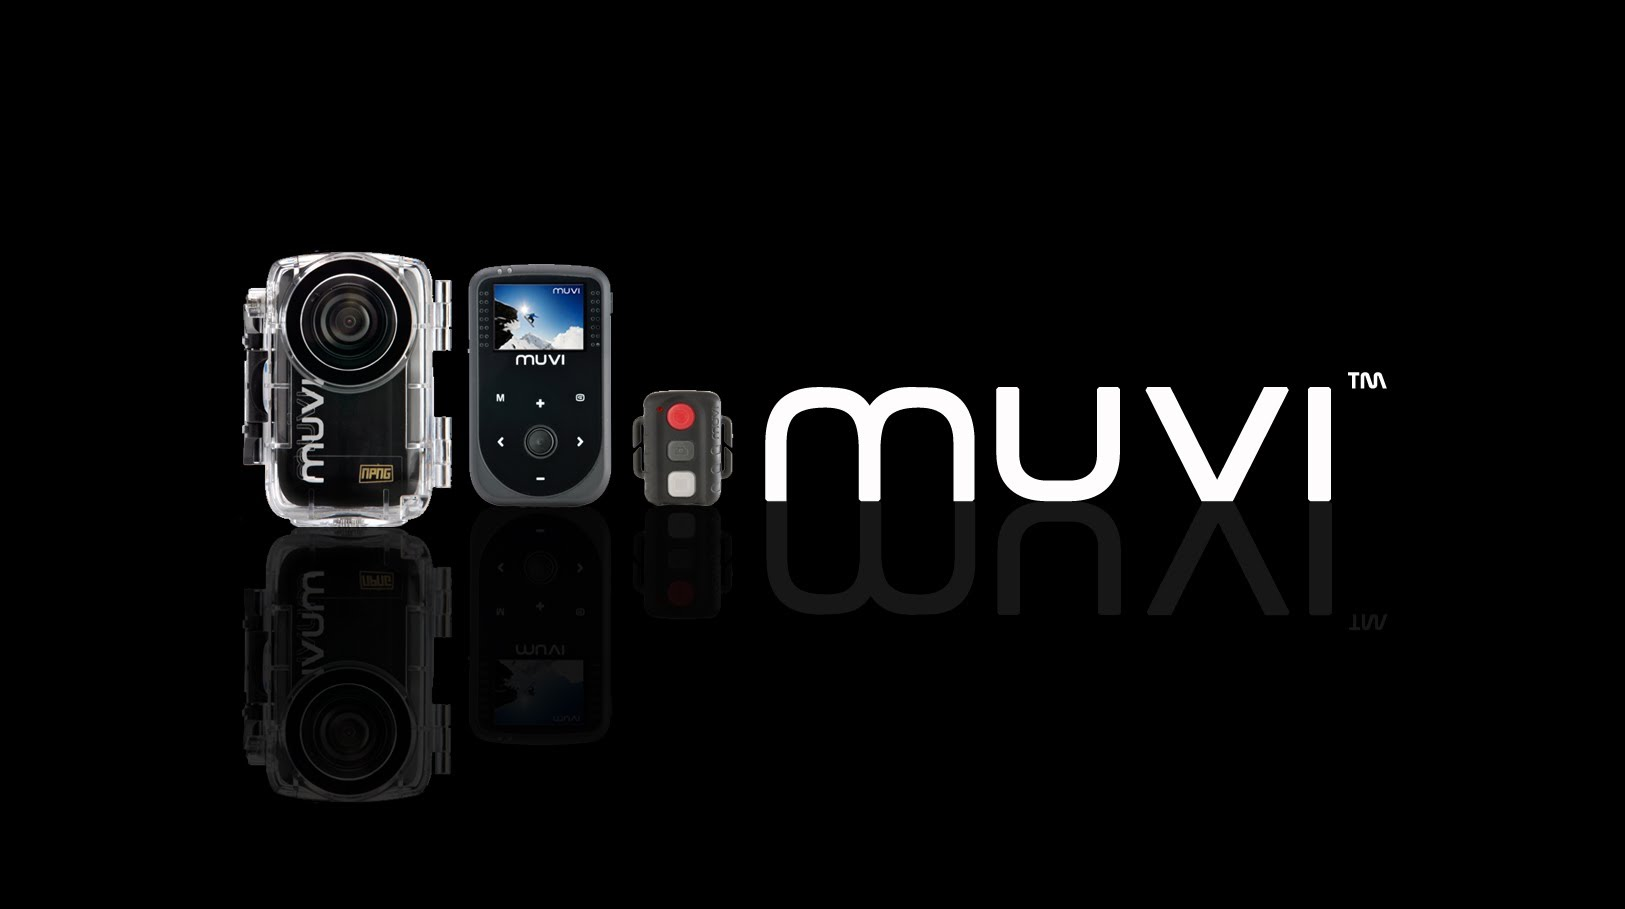 Veho MUVI HD hands free action camera